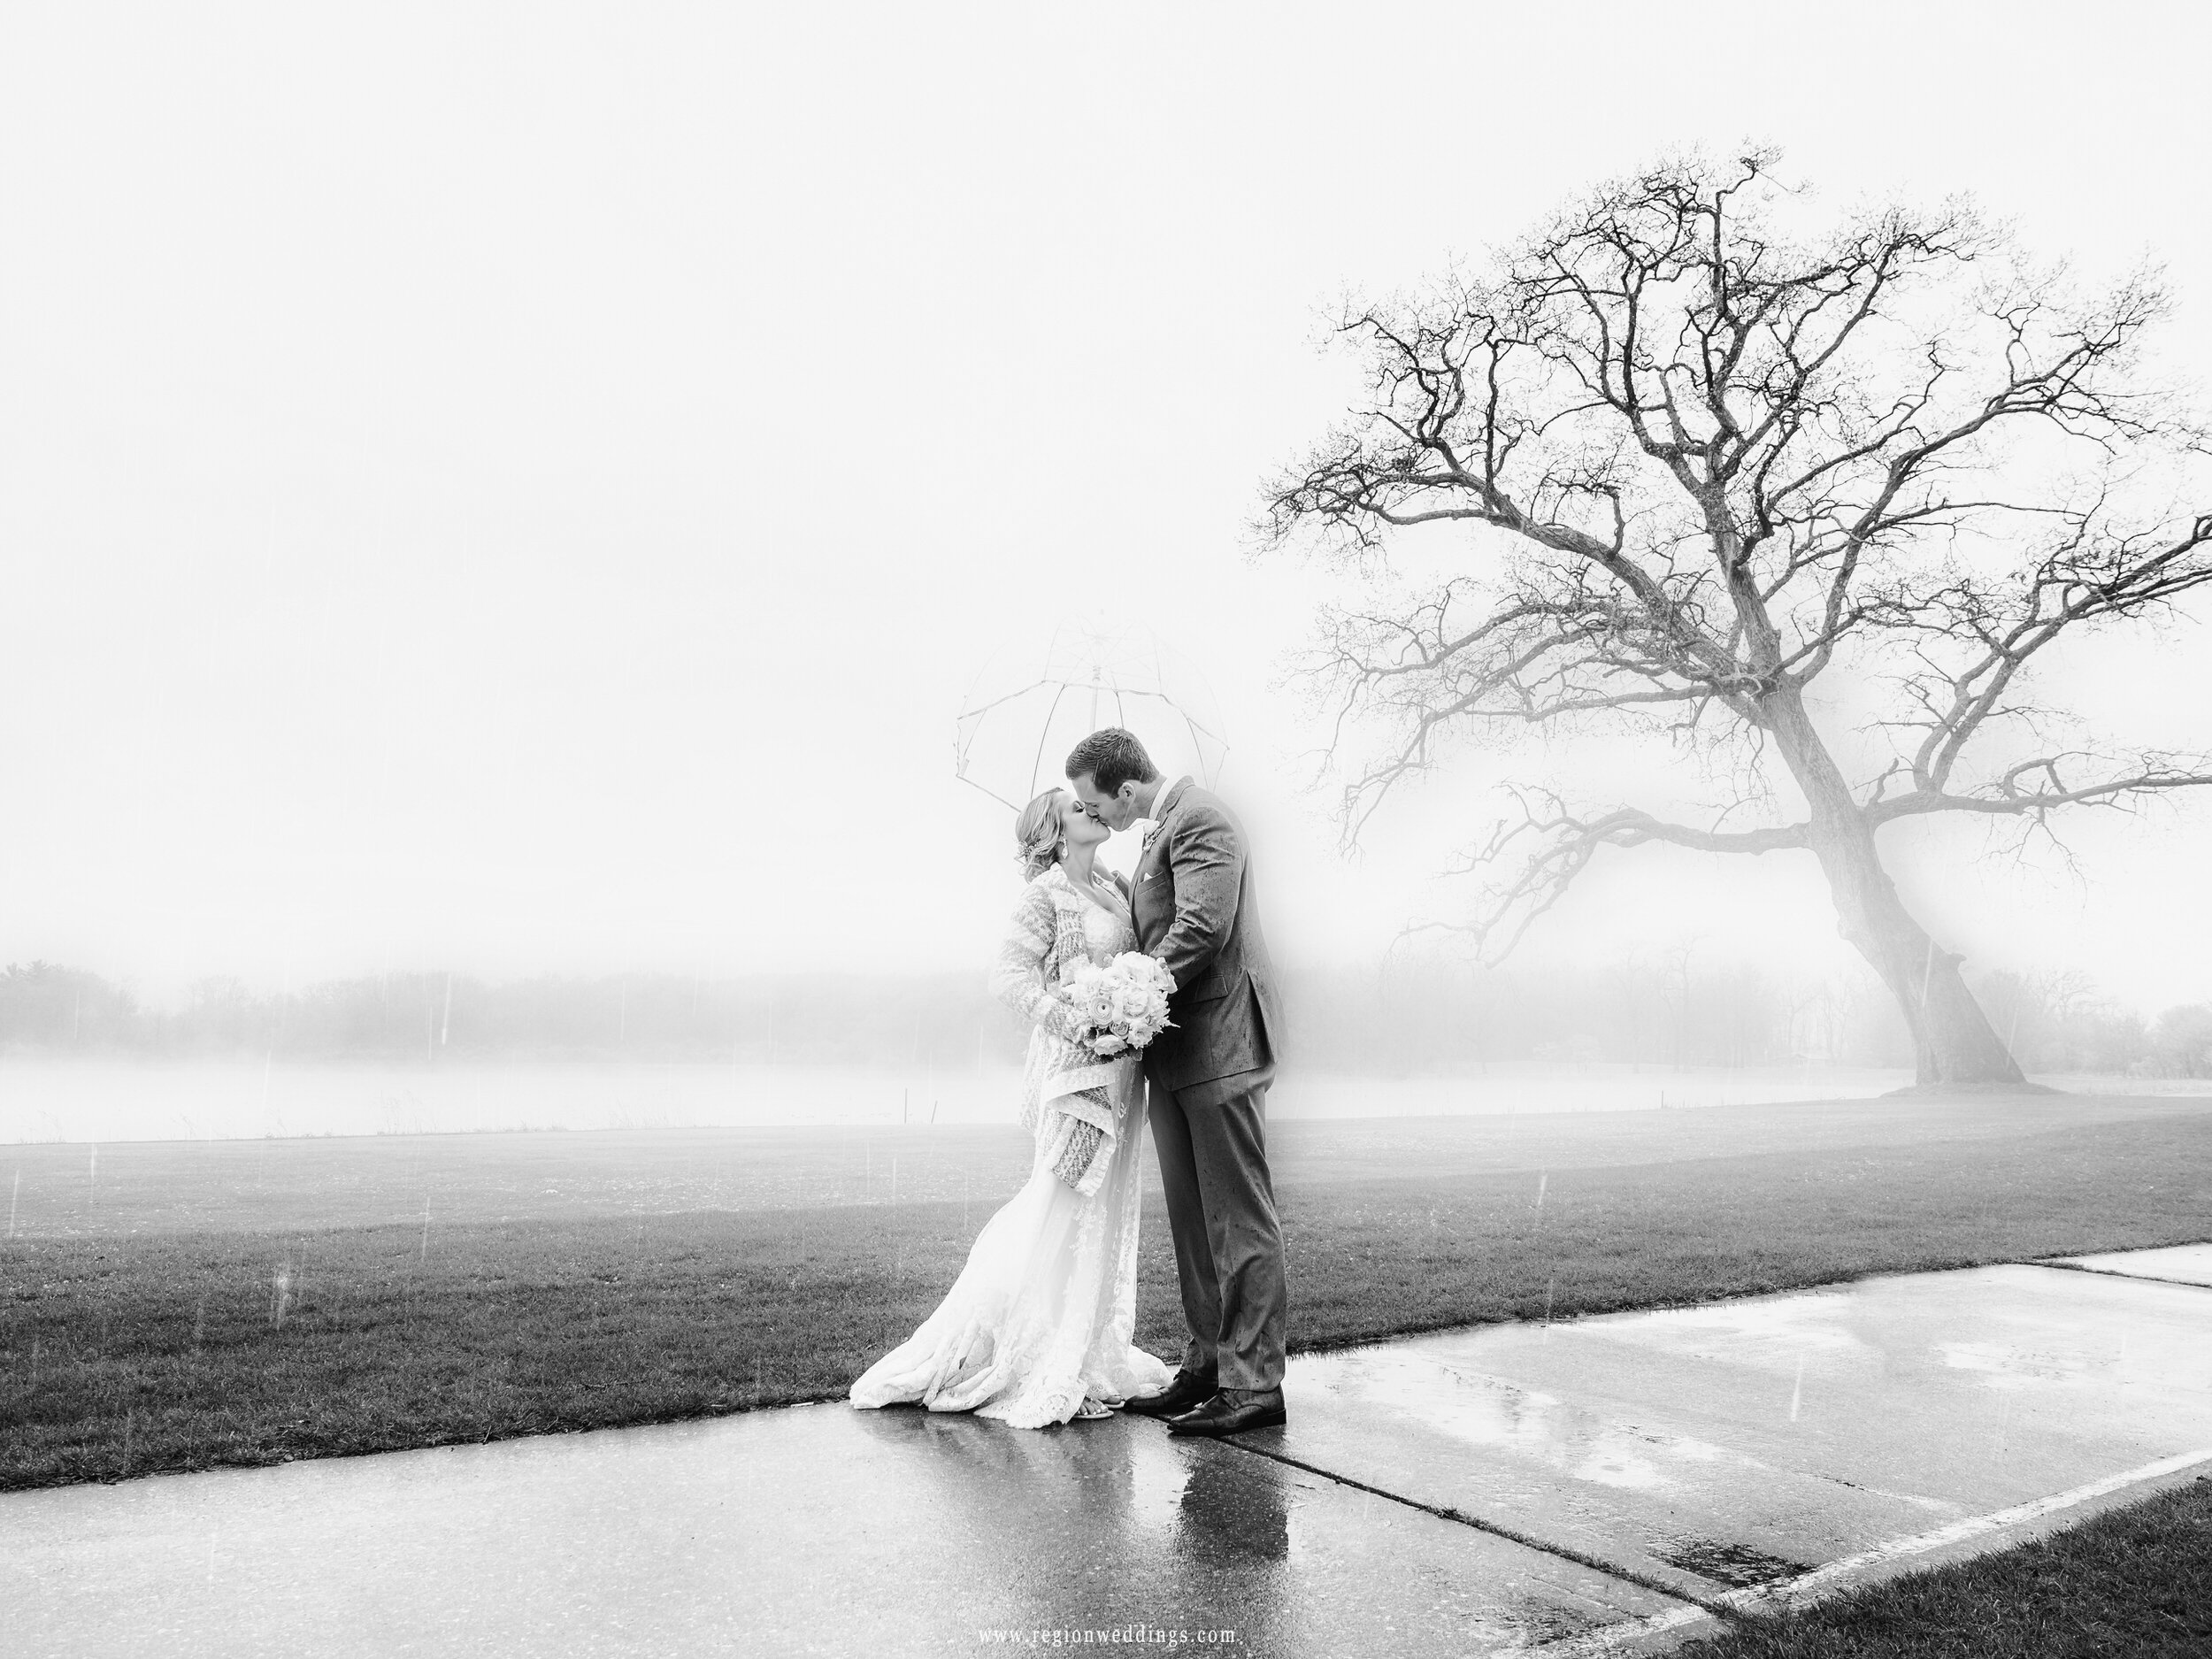 Wind and rain descend upon the bride and groom during their wedding photos.